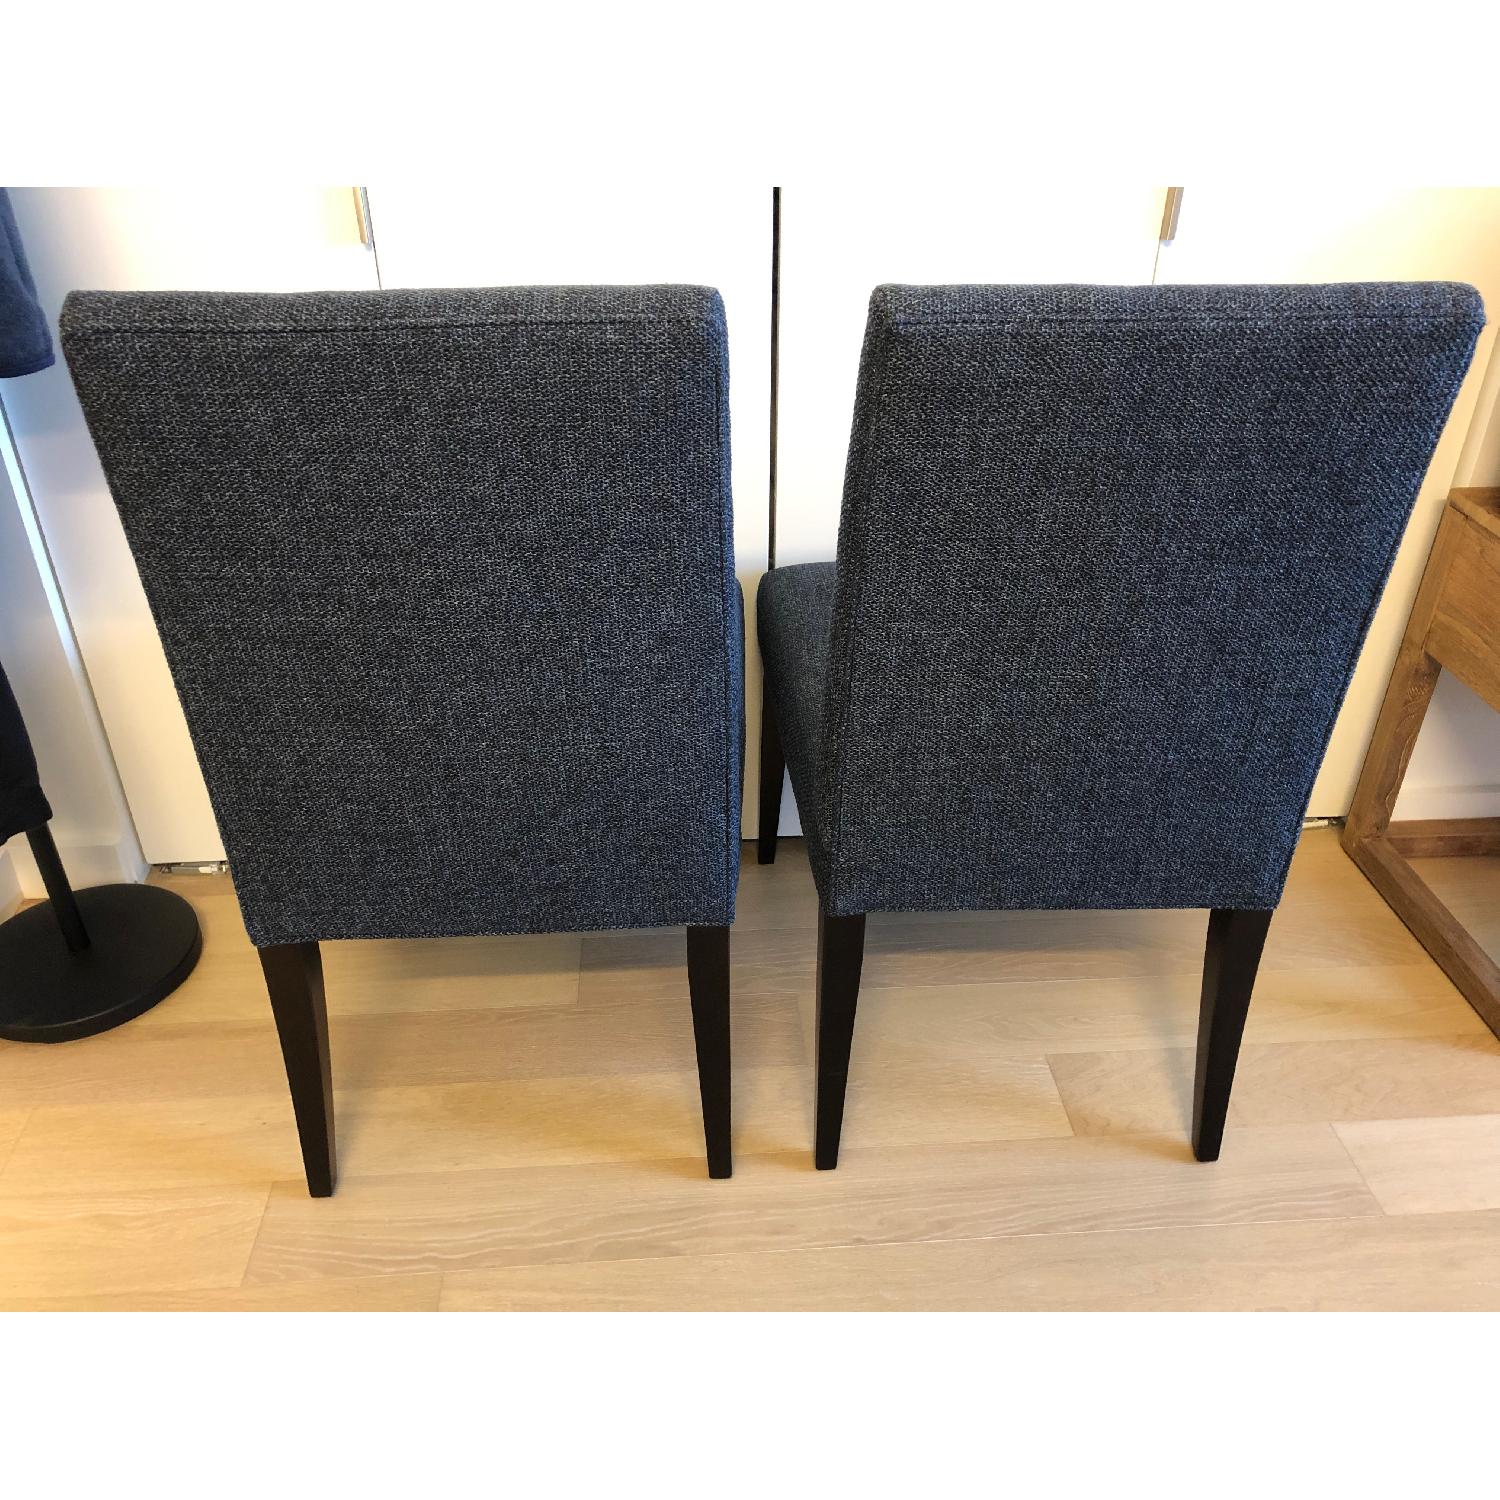 Crate & Barrel Miles Upholstered Dining Chair - image-2